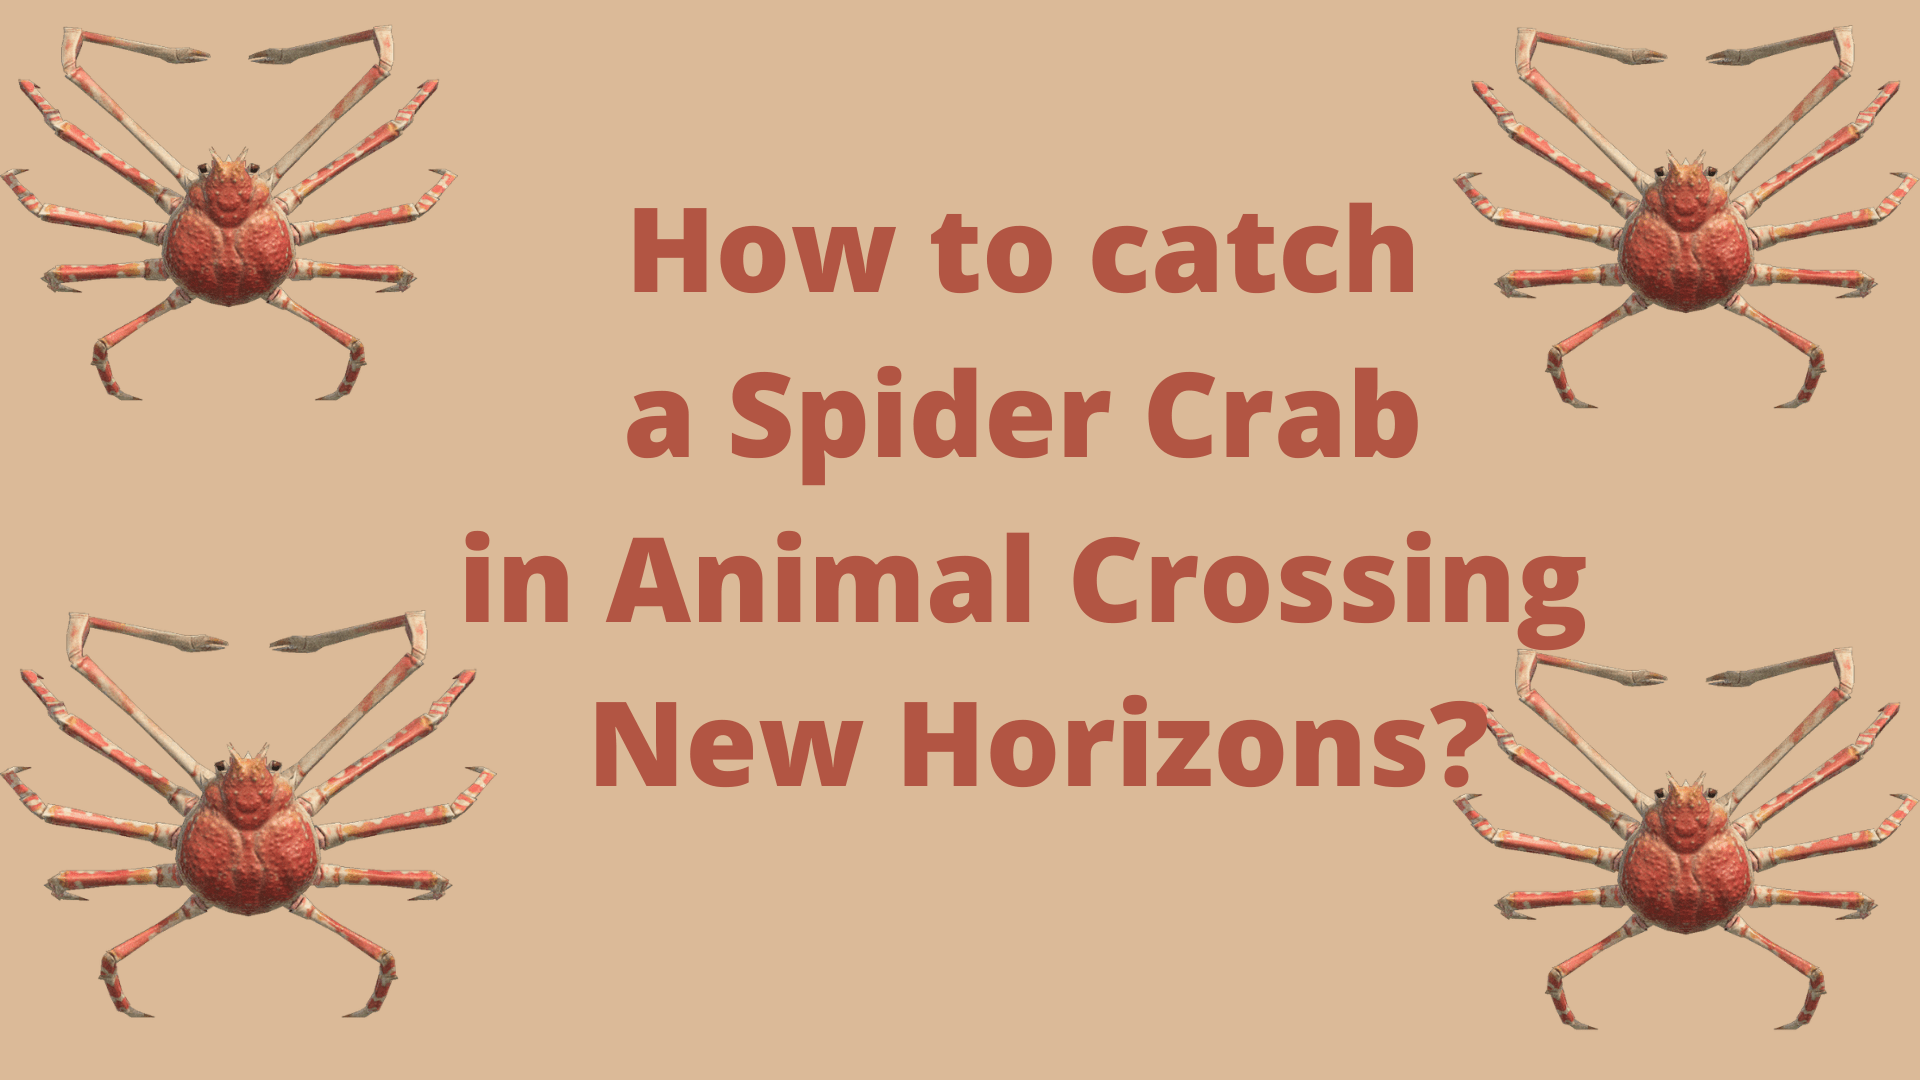 How to catch a Spider Crab in Animal Crossing New Horizons_